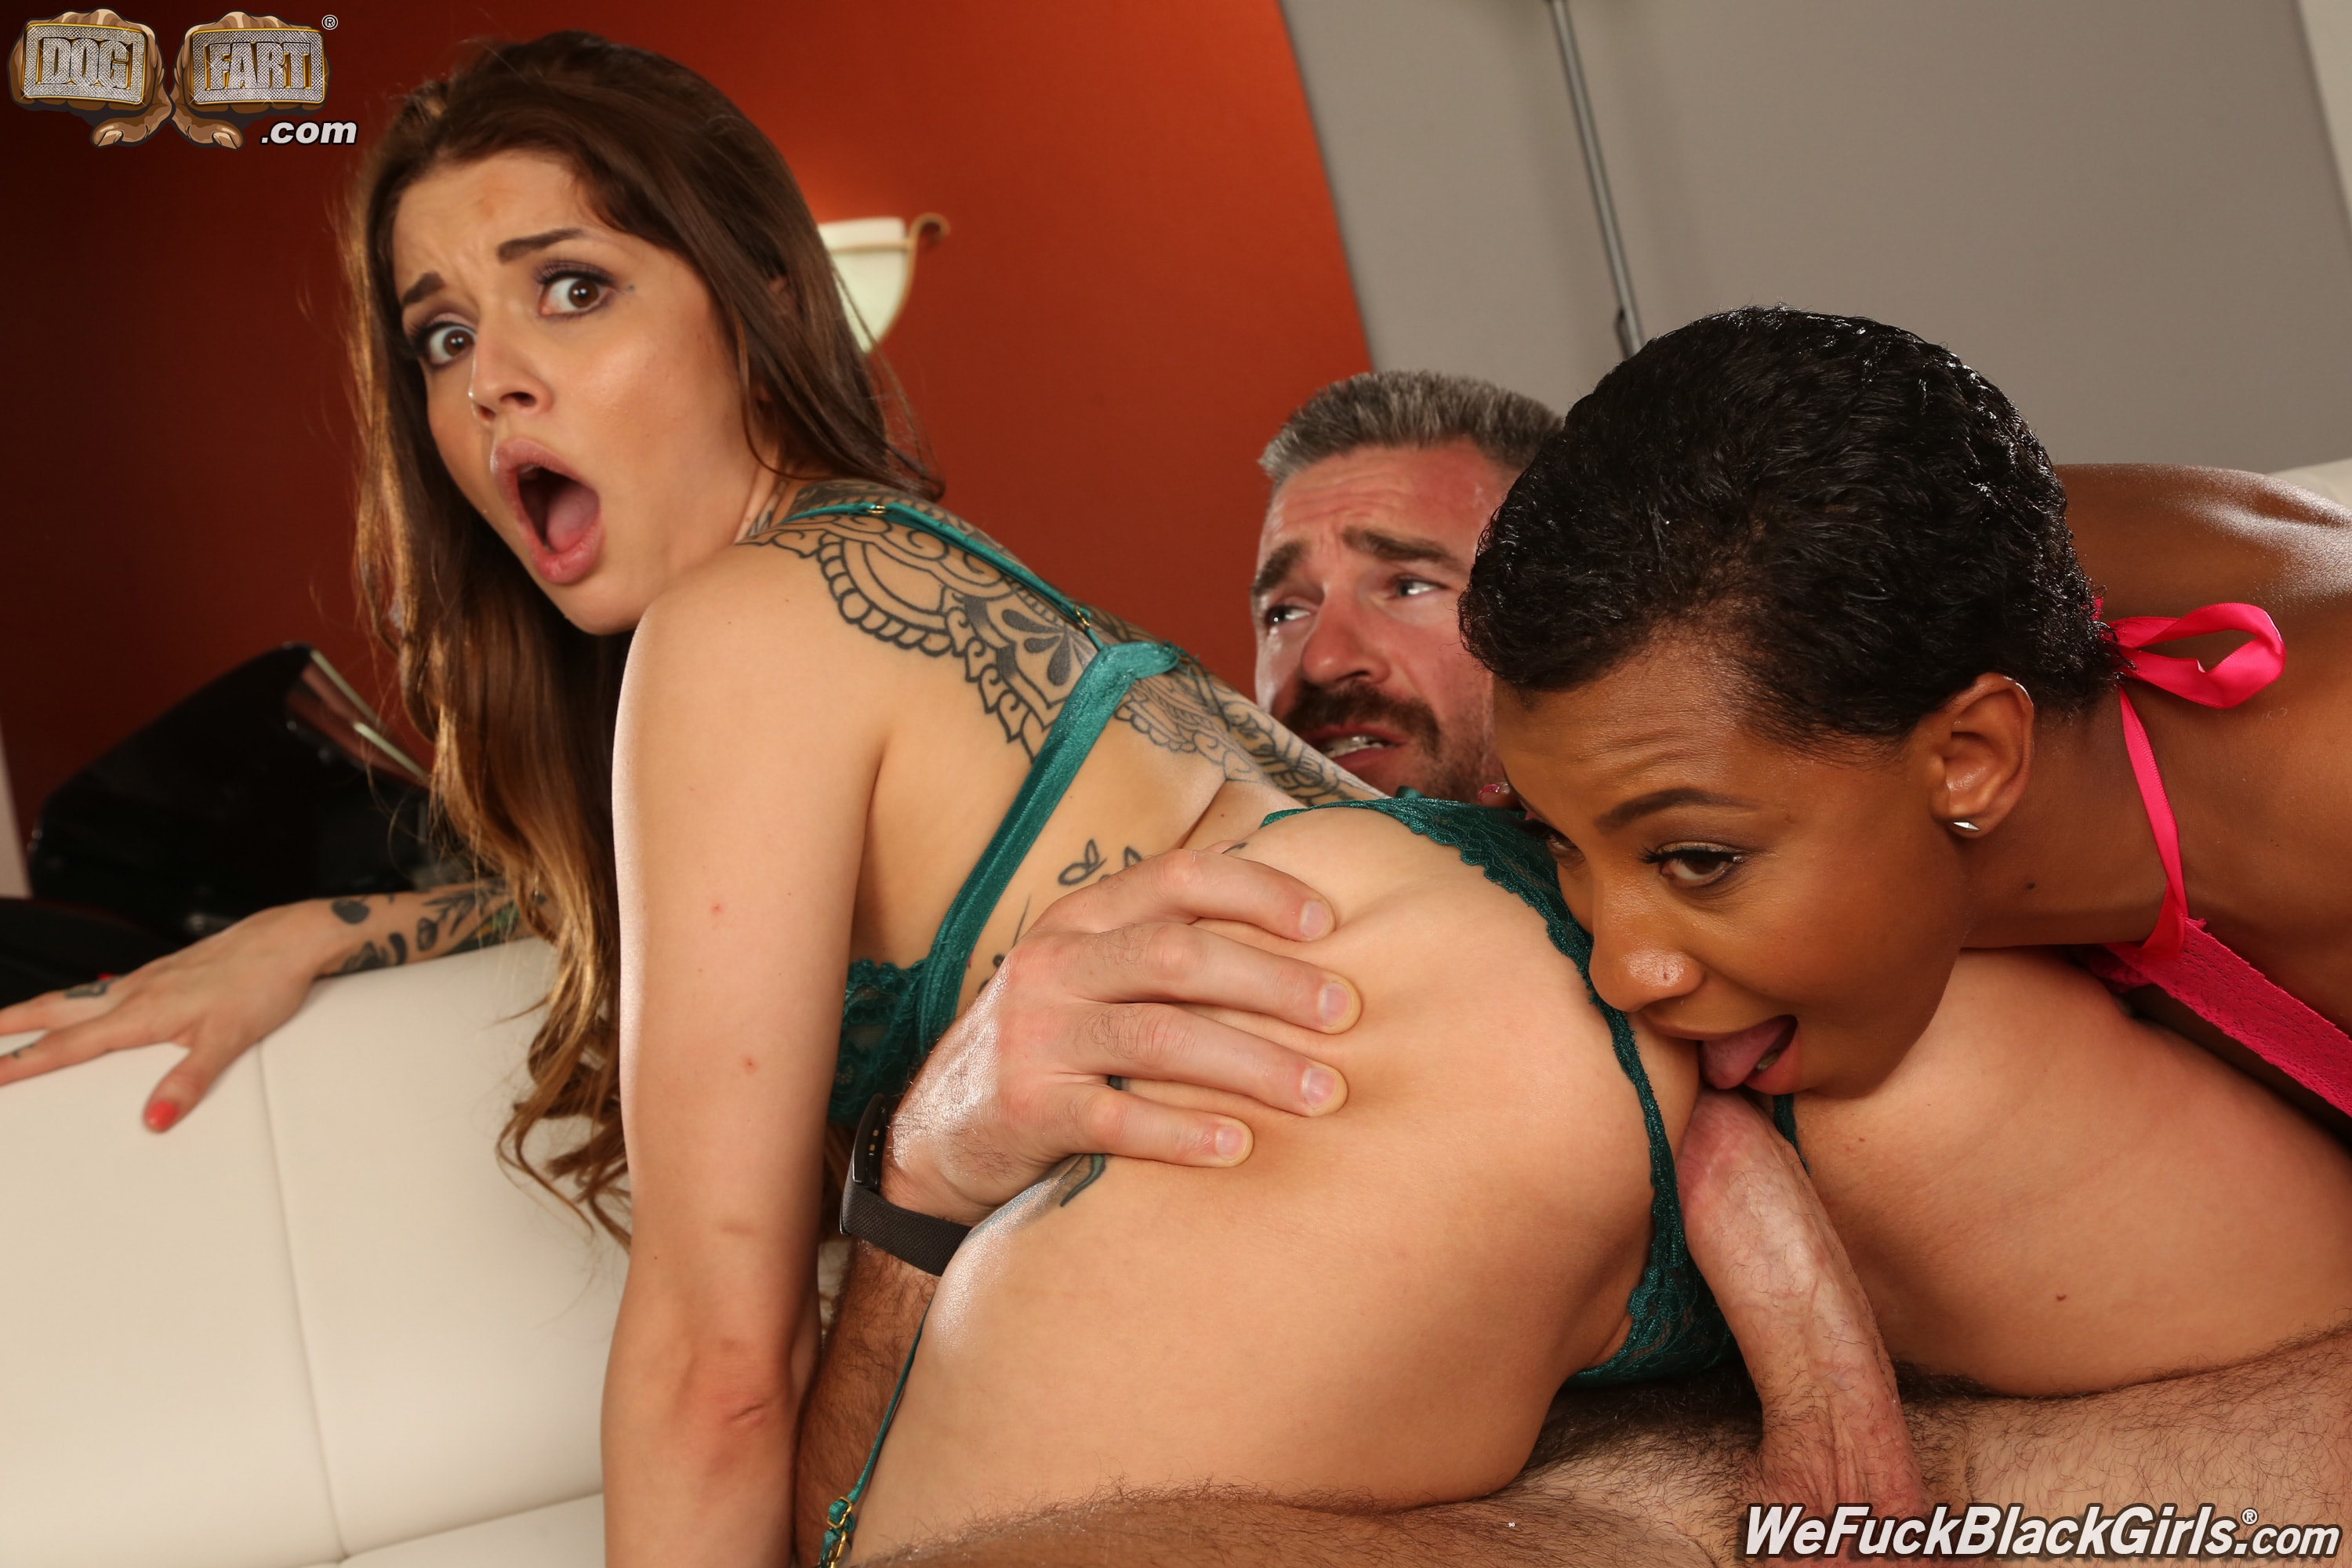 Dogfart 'and Vanessa Vega - We Fuck Black Girls' starring September Reign (Photo 17)